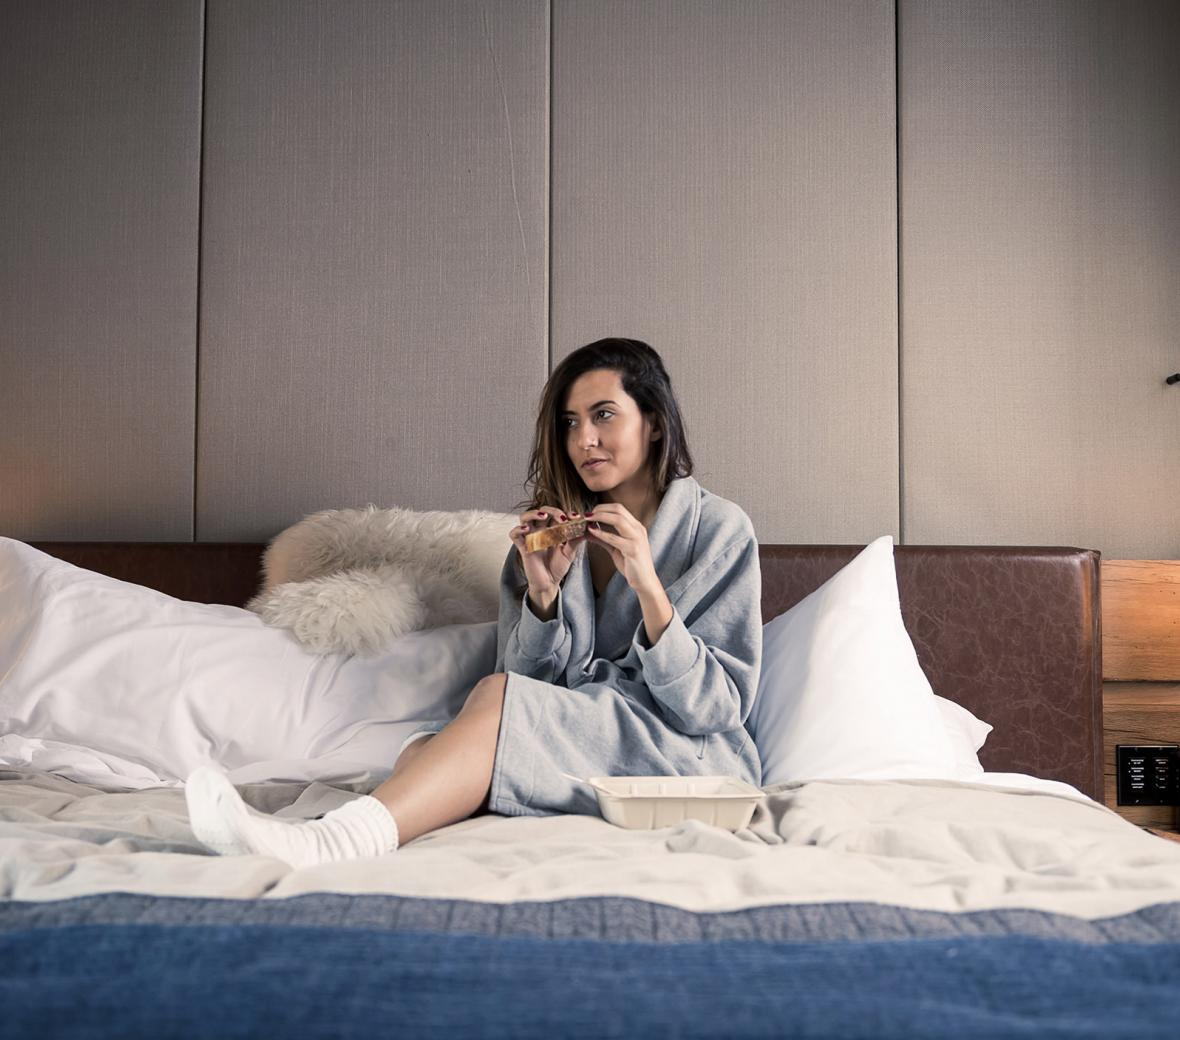 Woman in bed with coffee in bathrobe